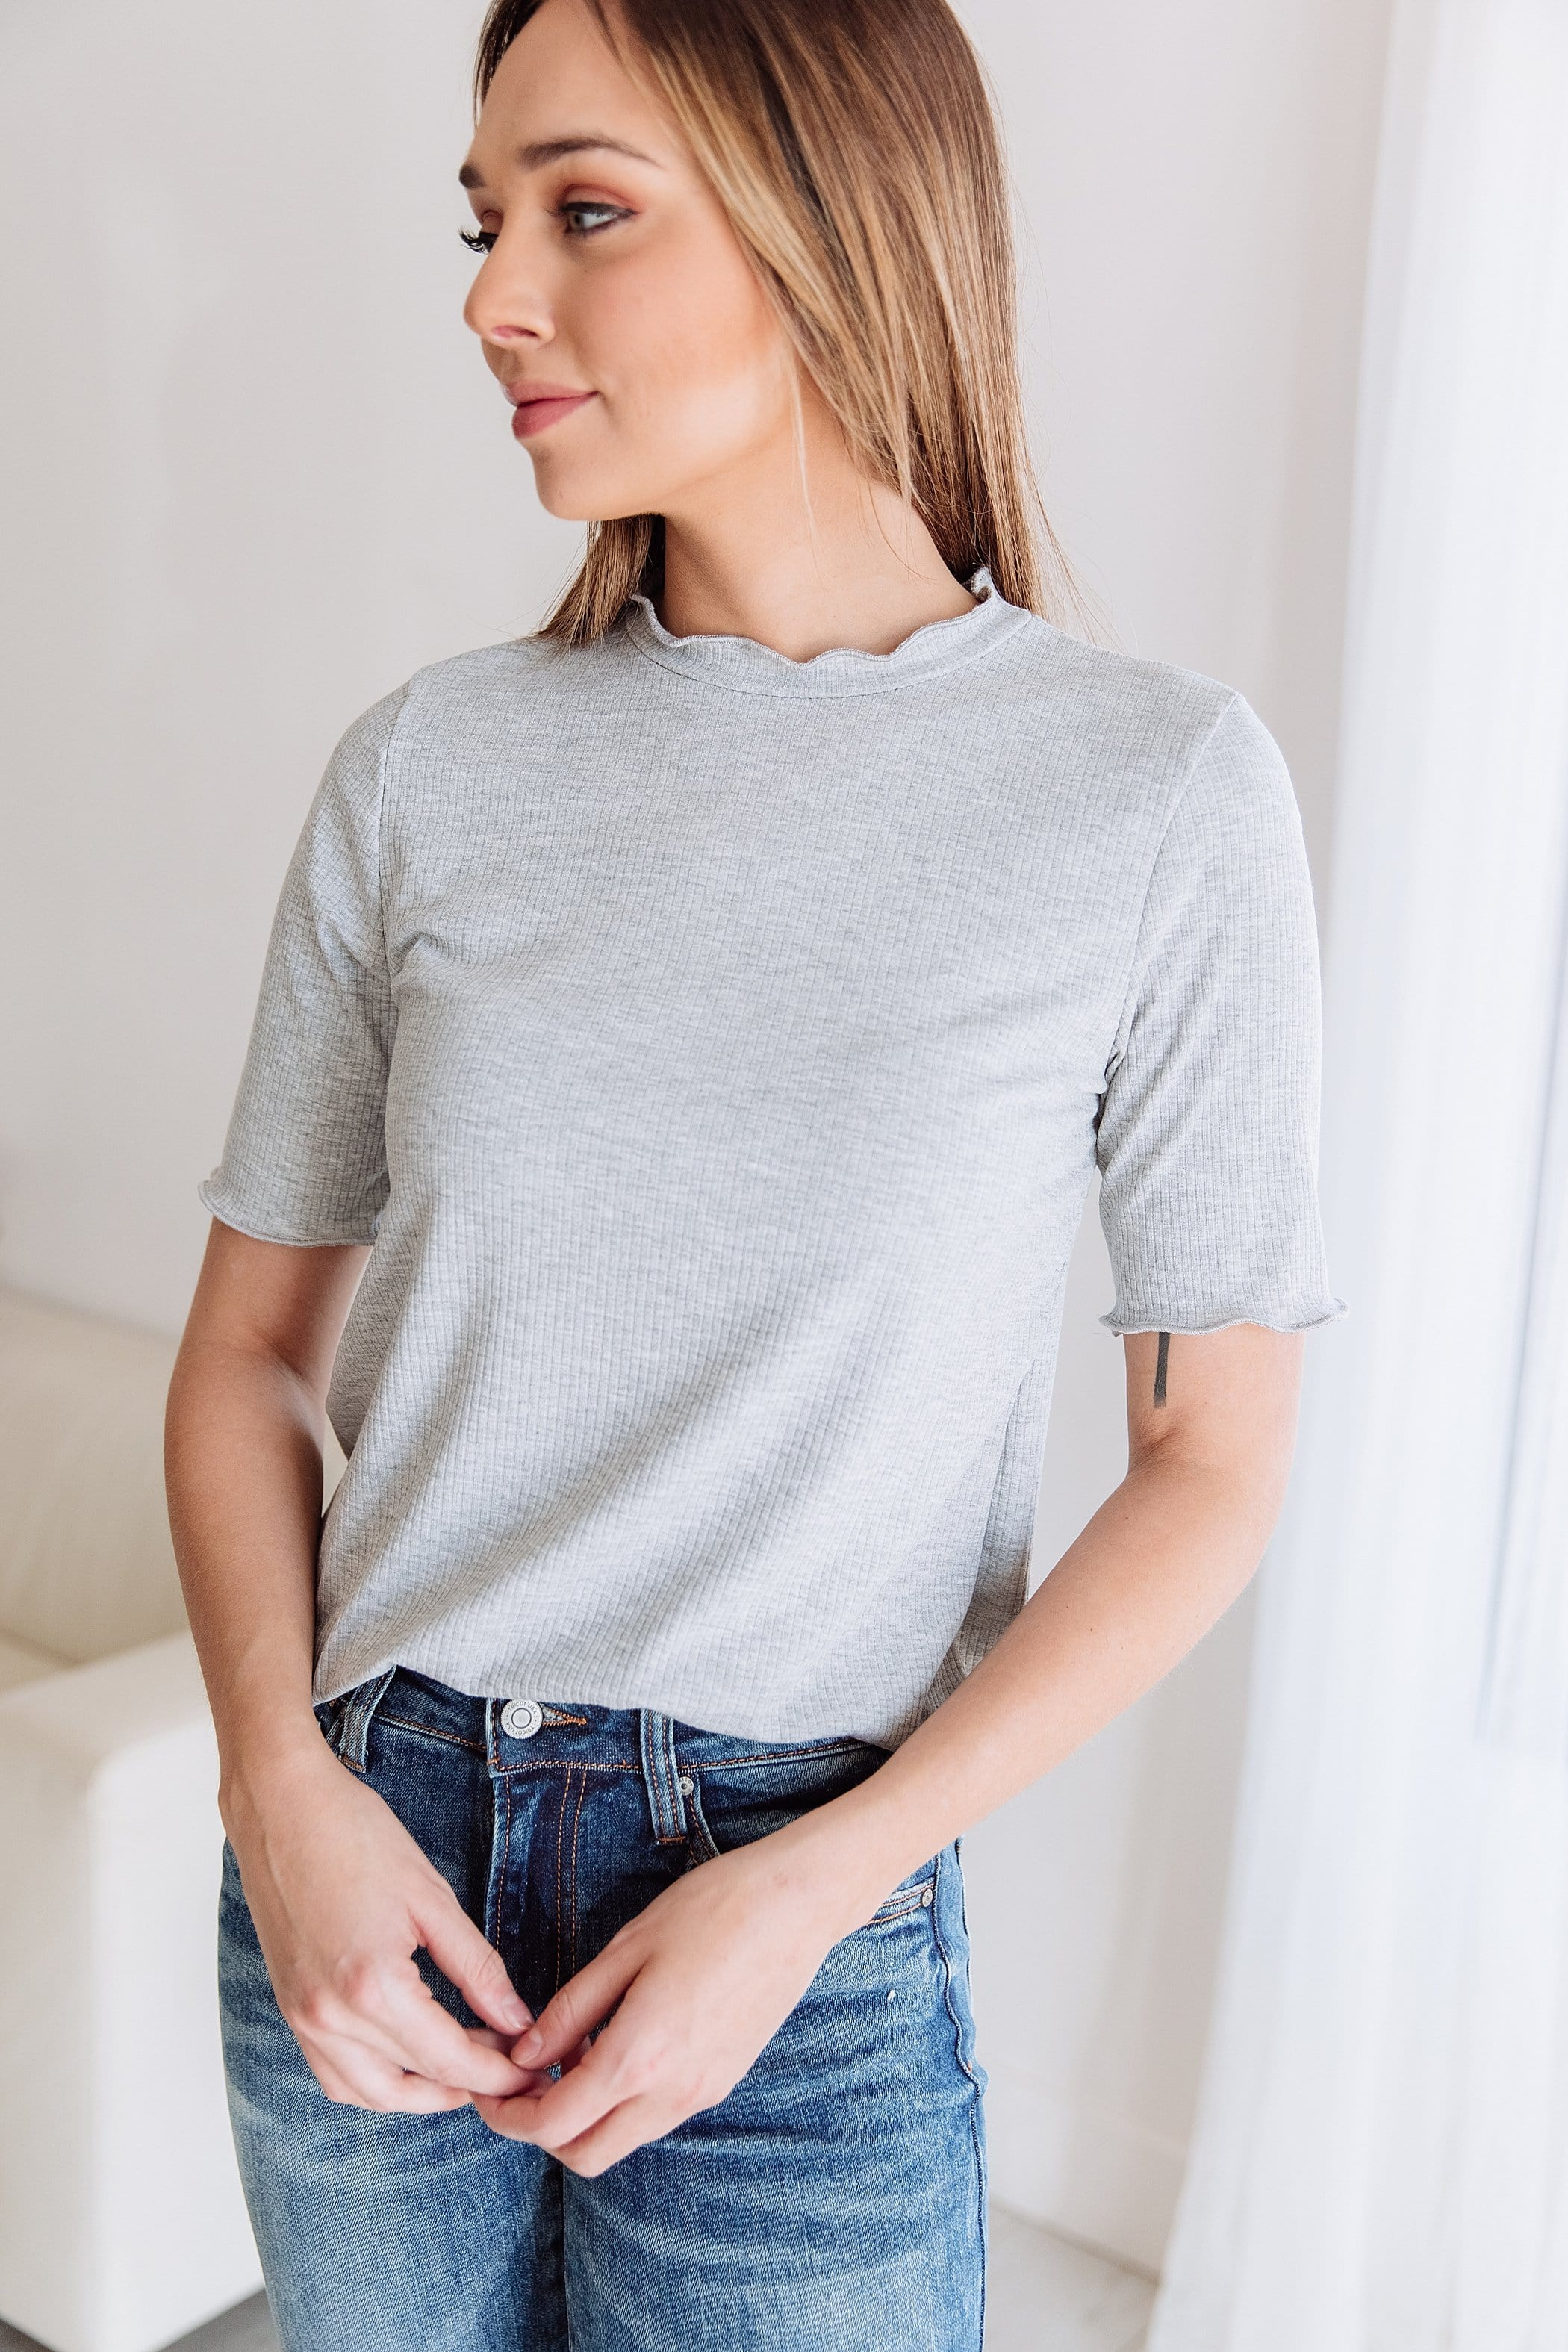 The Hannah Ribbed Top in Multiple Colors